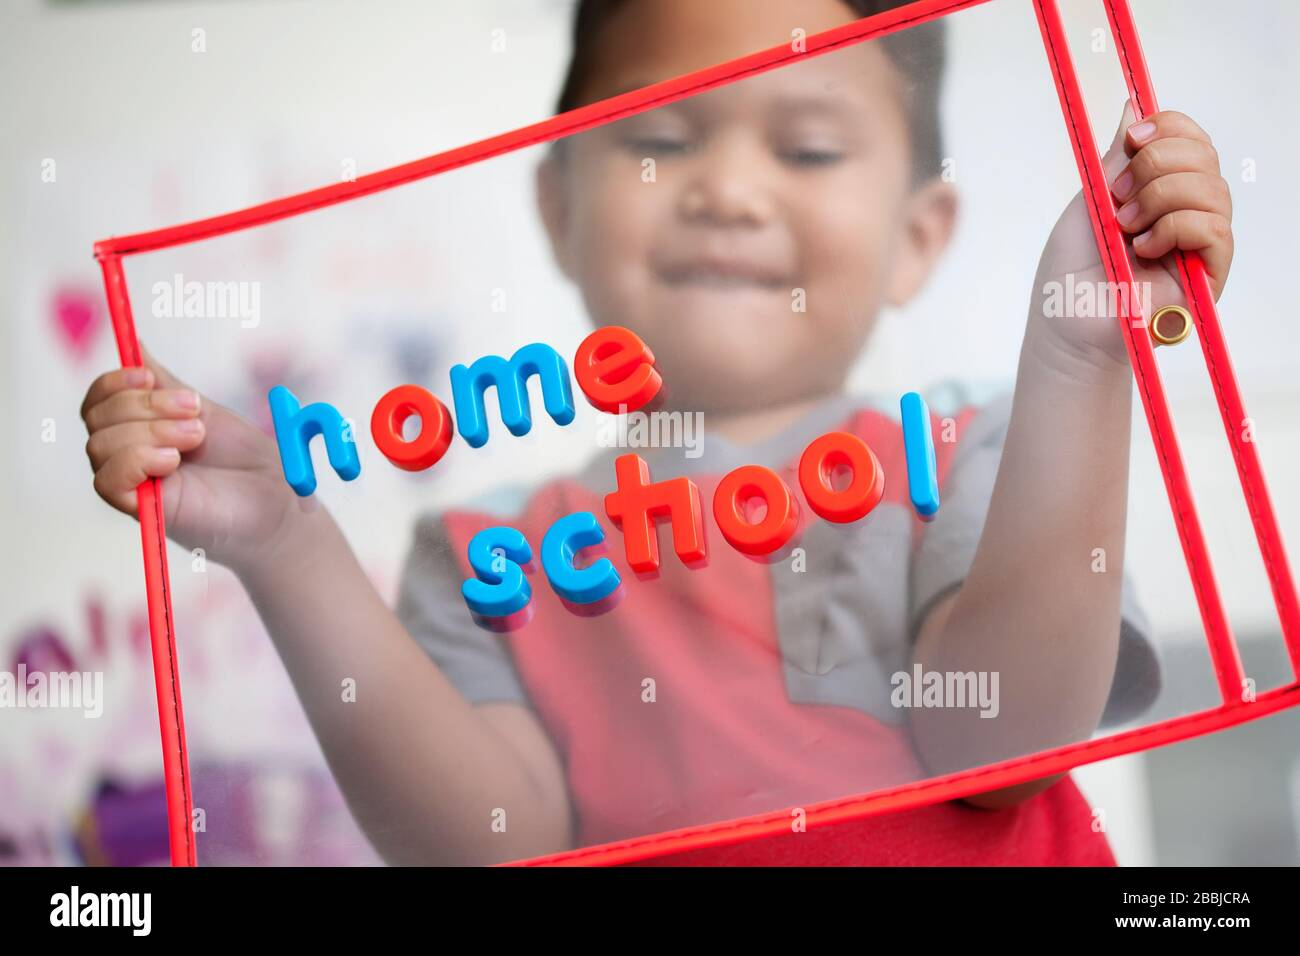 A 4 year old boy with a smile on his face is happy to start home school. Stock Photo